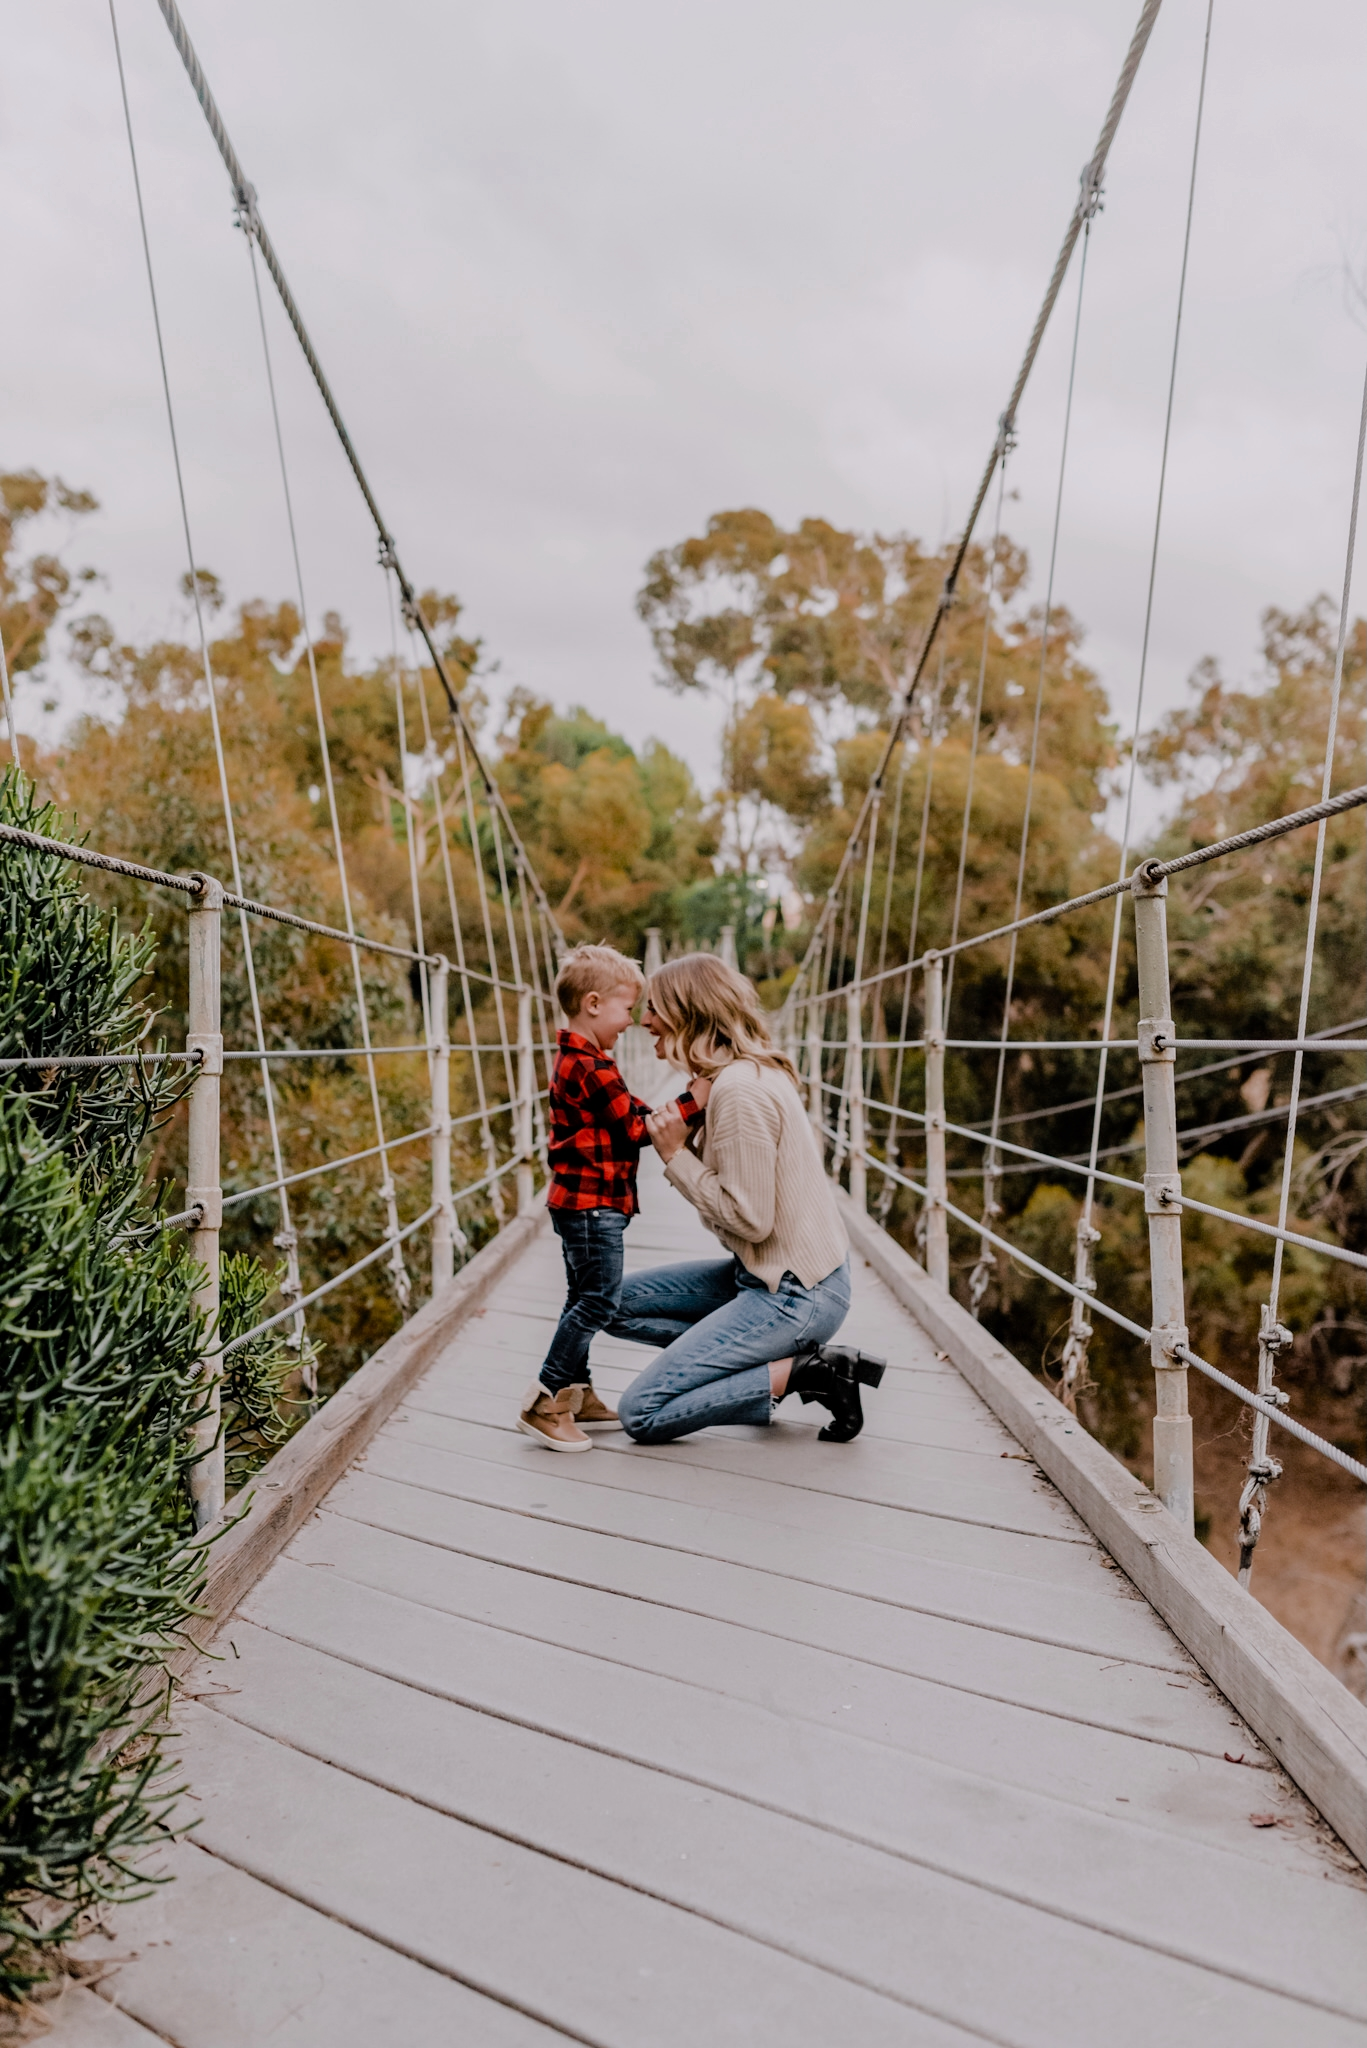 Amazon Finds by popular San Diego life and style blog, Navy Grace: image of a mom and her young son standing together on a suspension bridge.